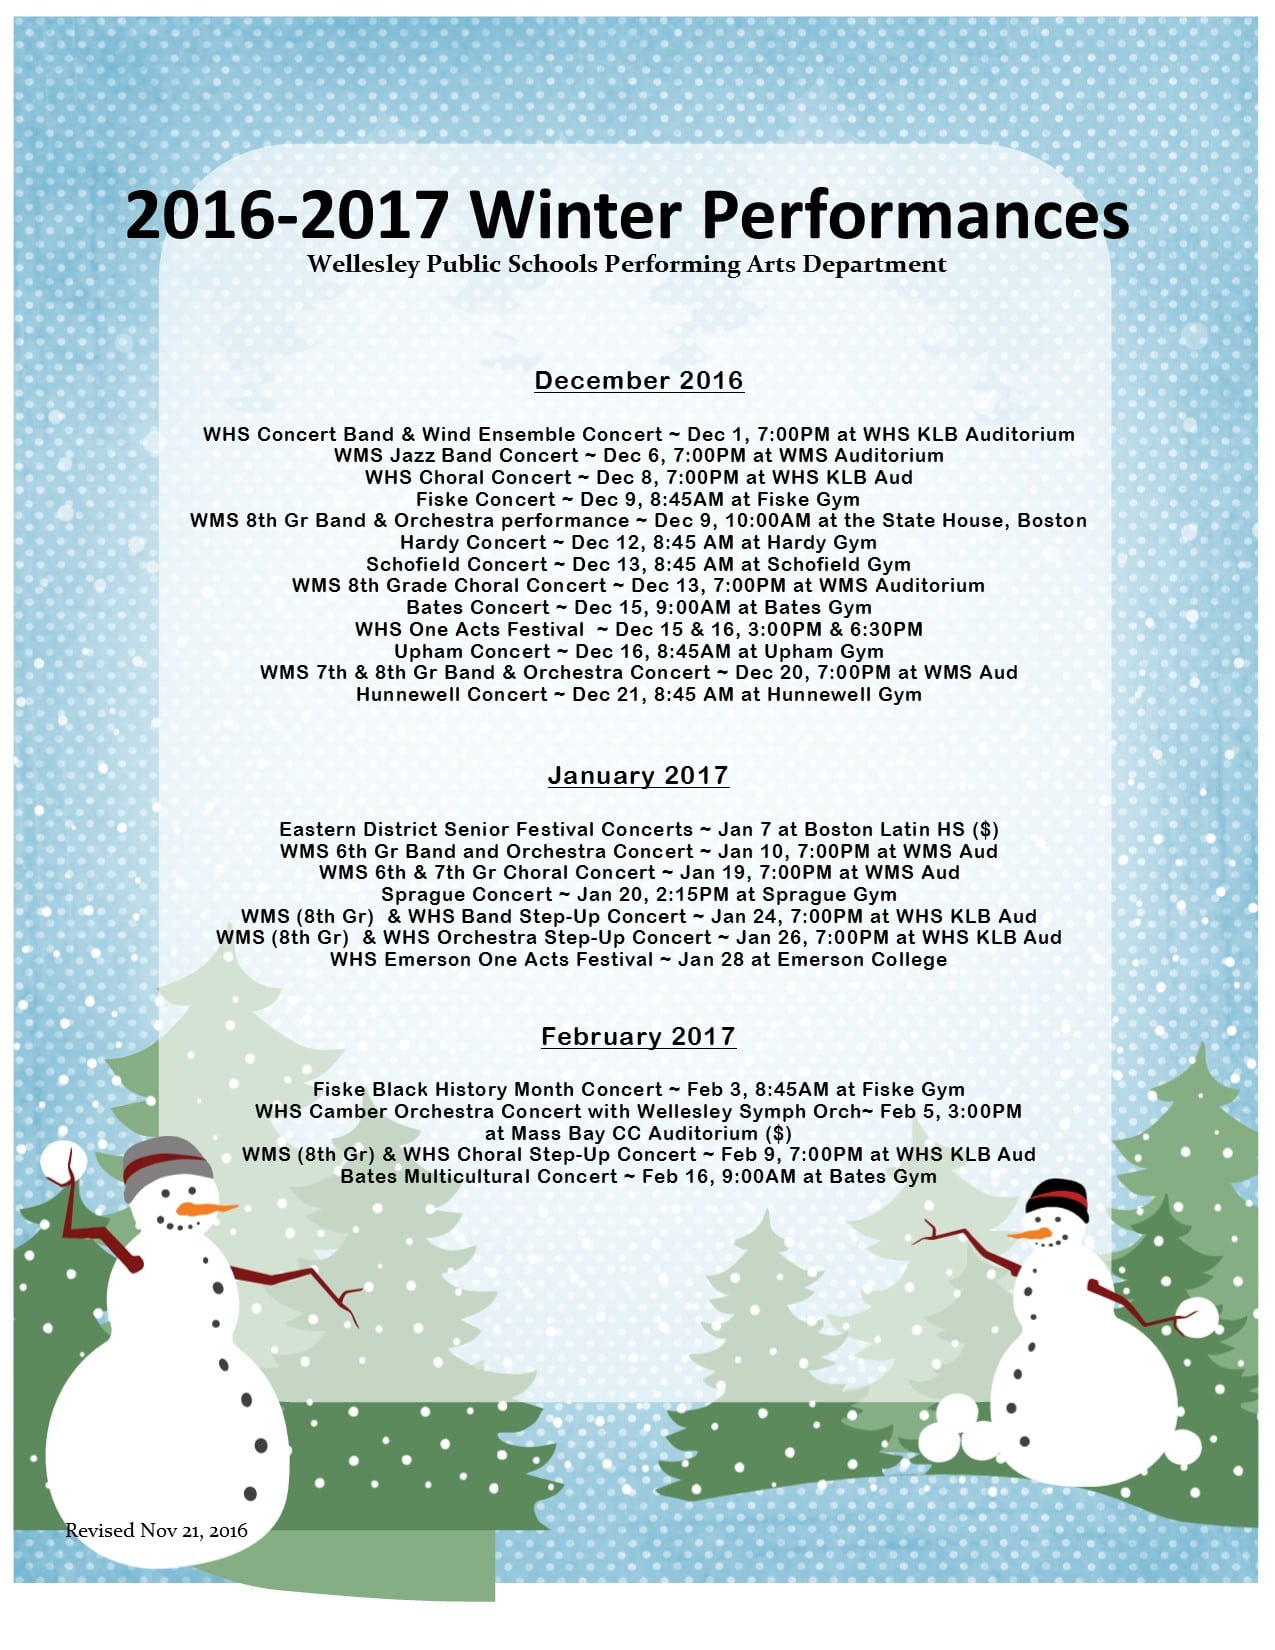 Wellesley Performing Arts schedule